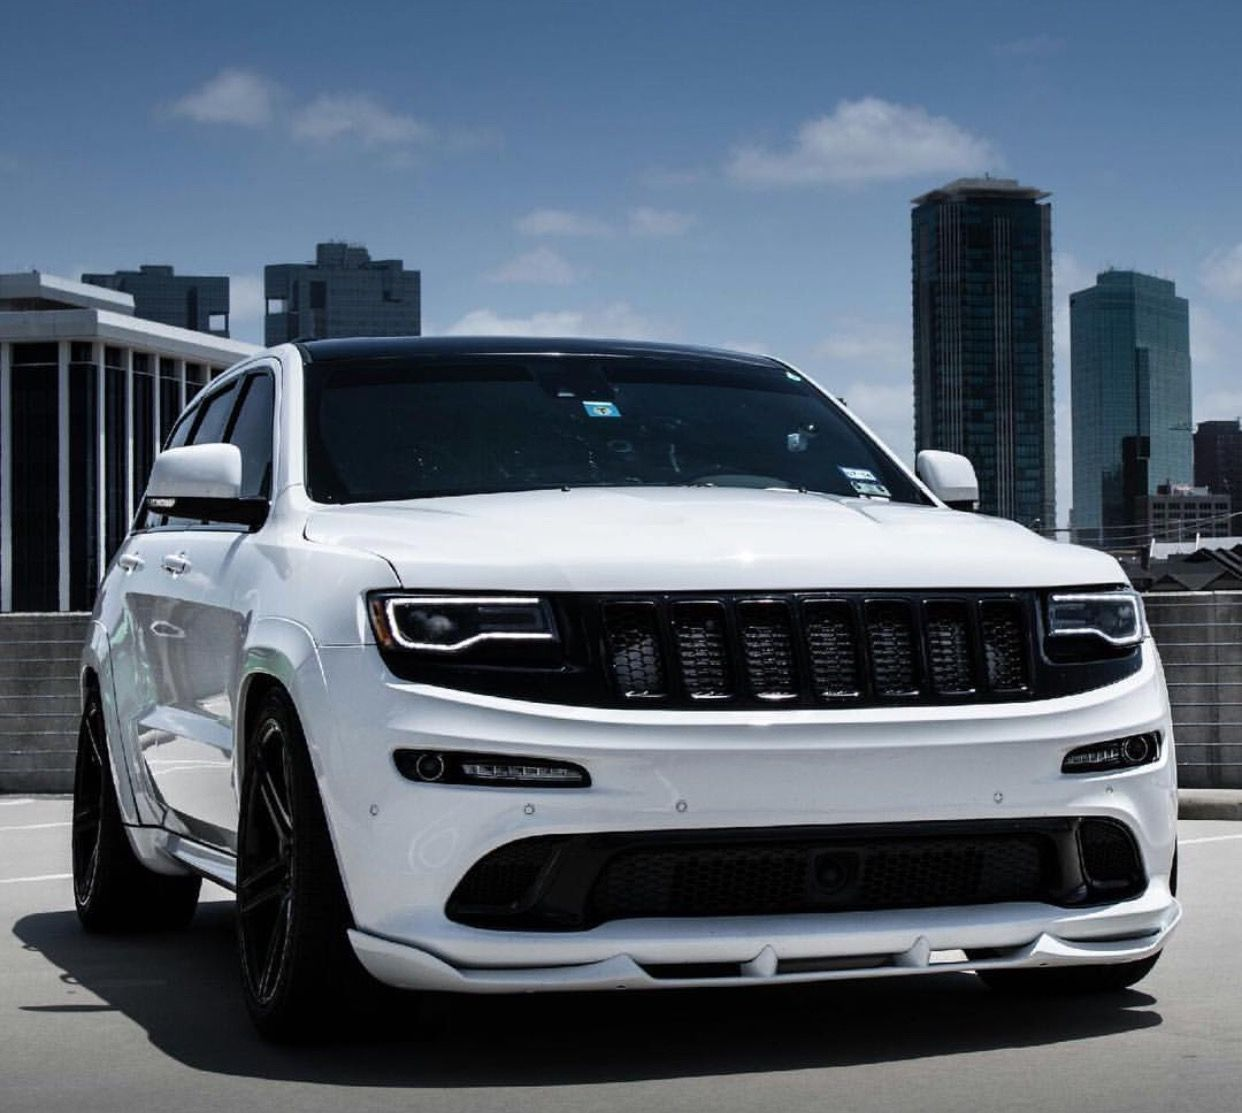 Jeep Grand Cherokee Stormtrooper Edition Jeep Srt8 Dream Cars Jeep Jeep Grand Cherokee Srt